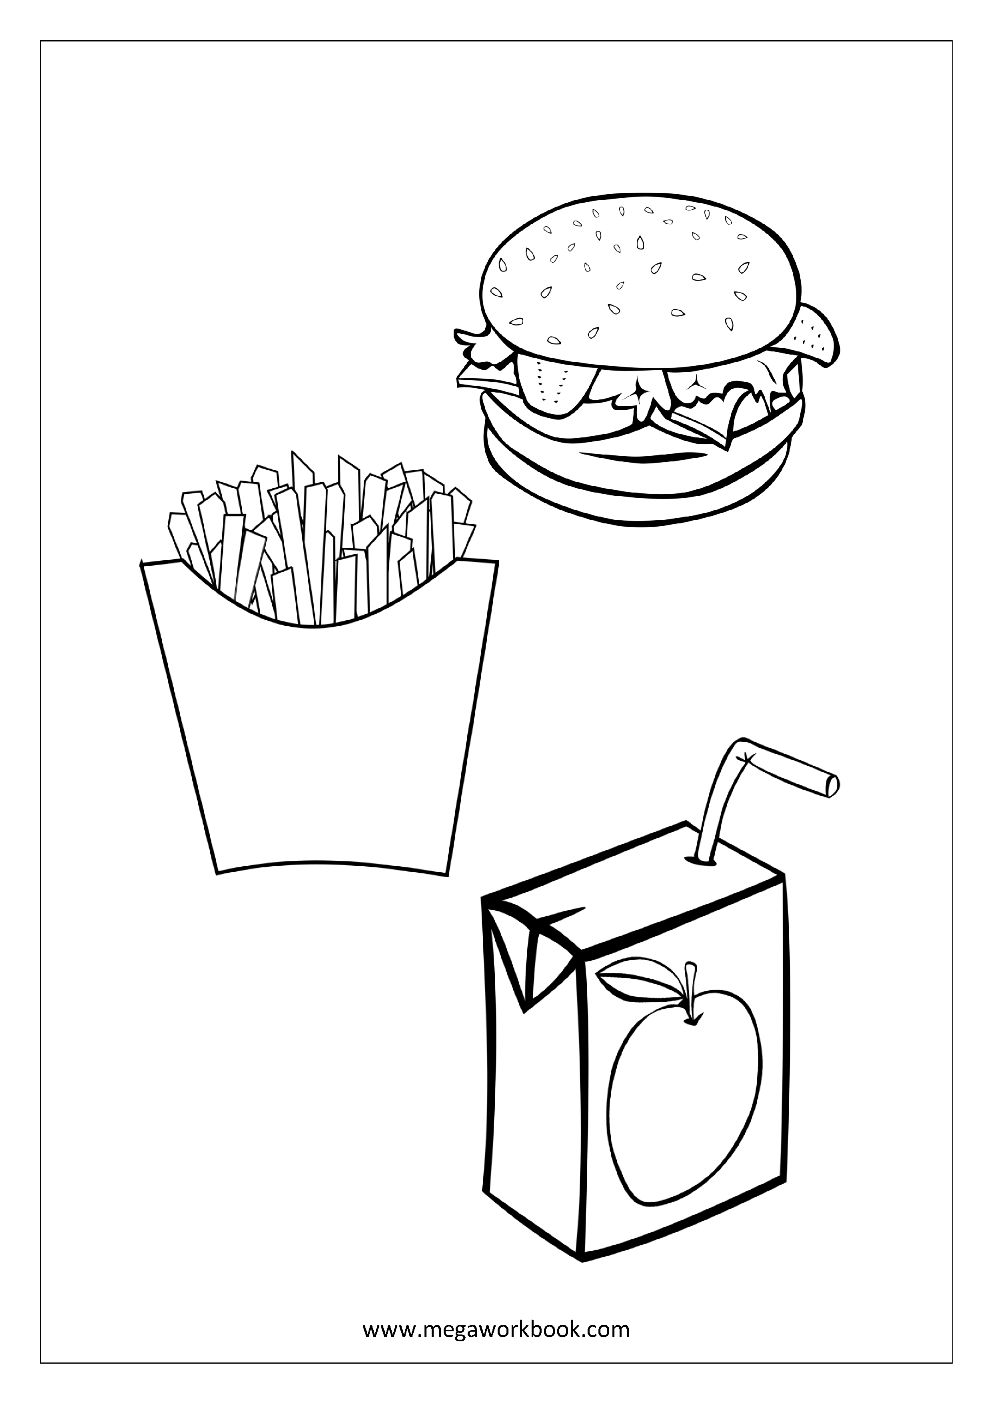 french fries coloring pages - photo#21